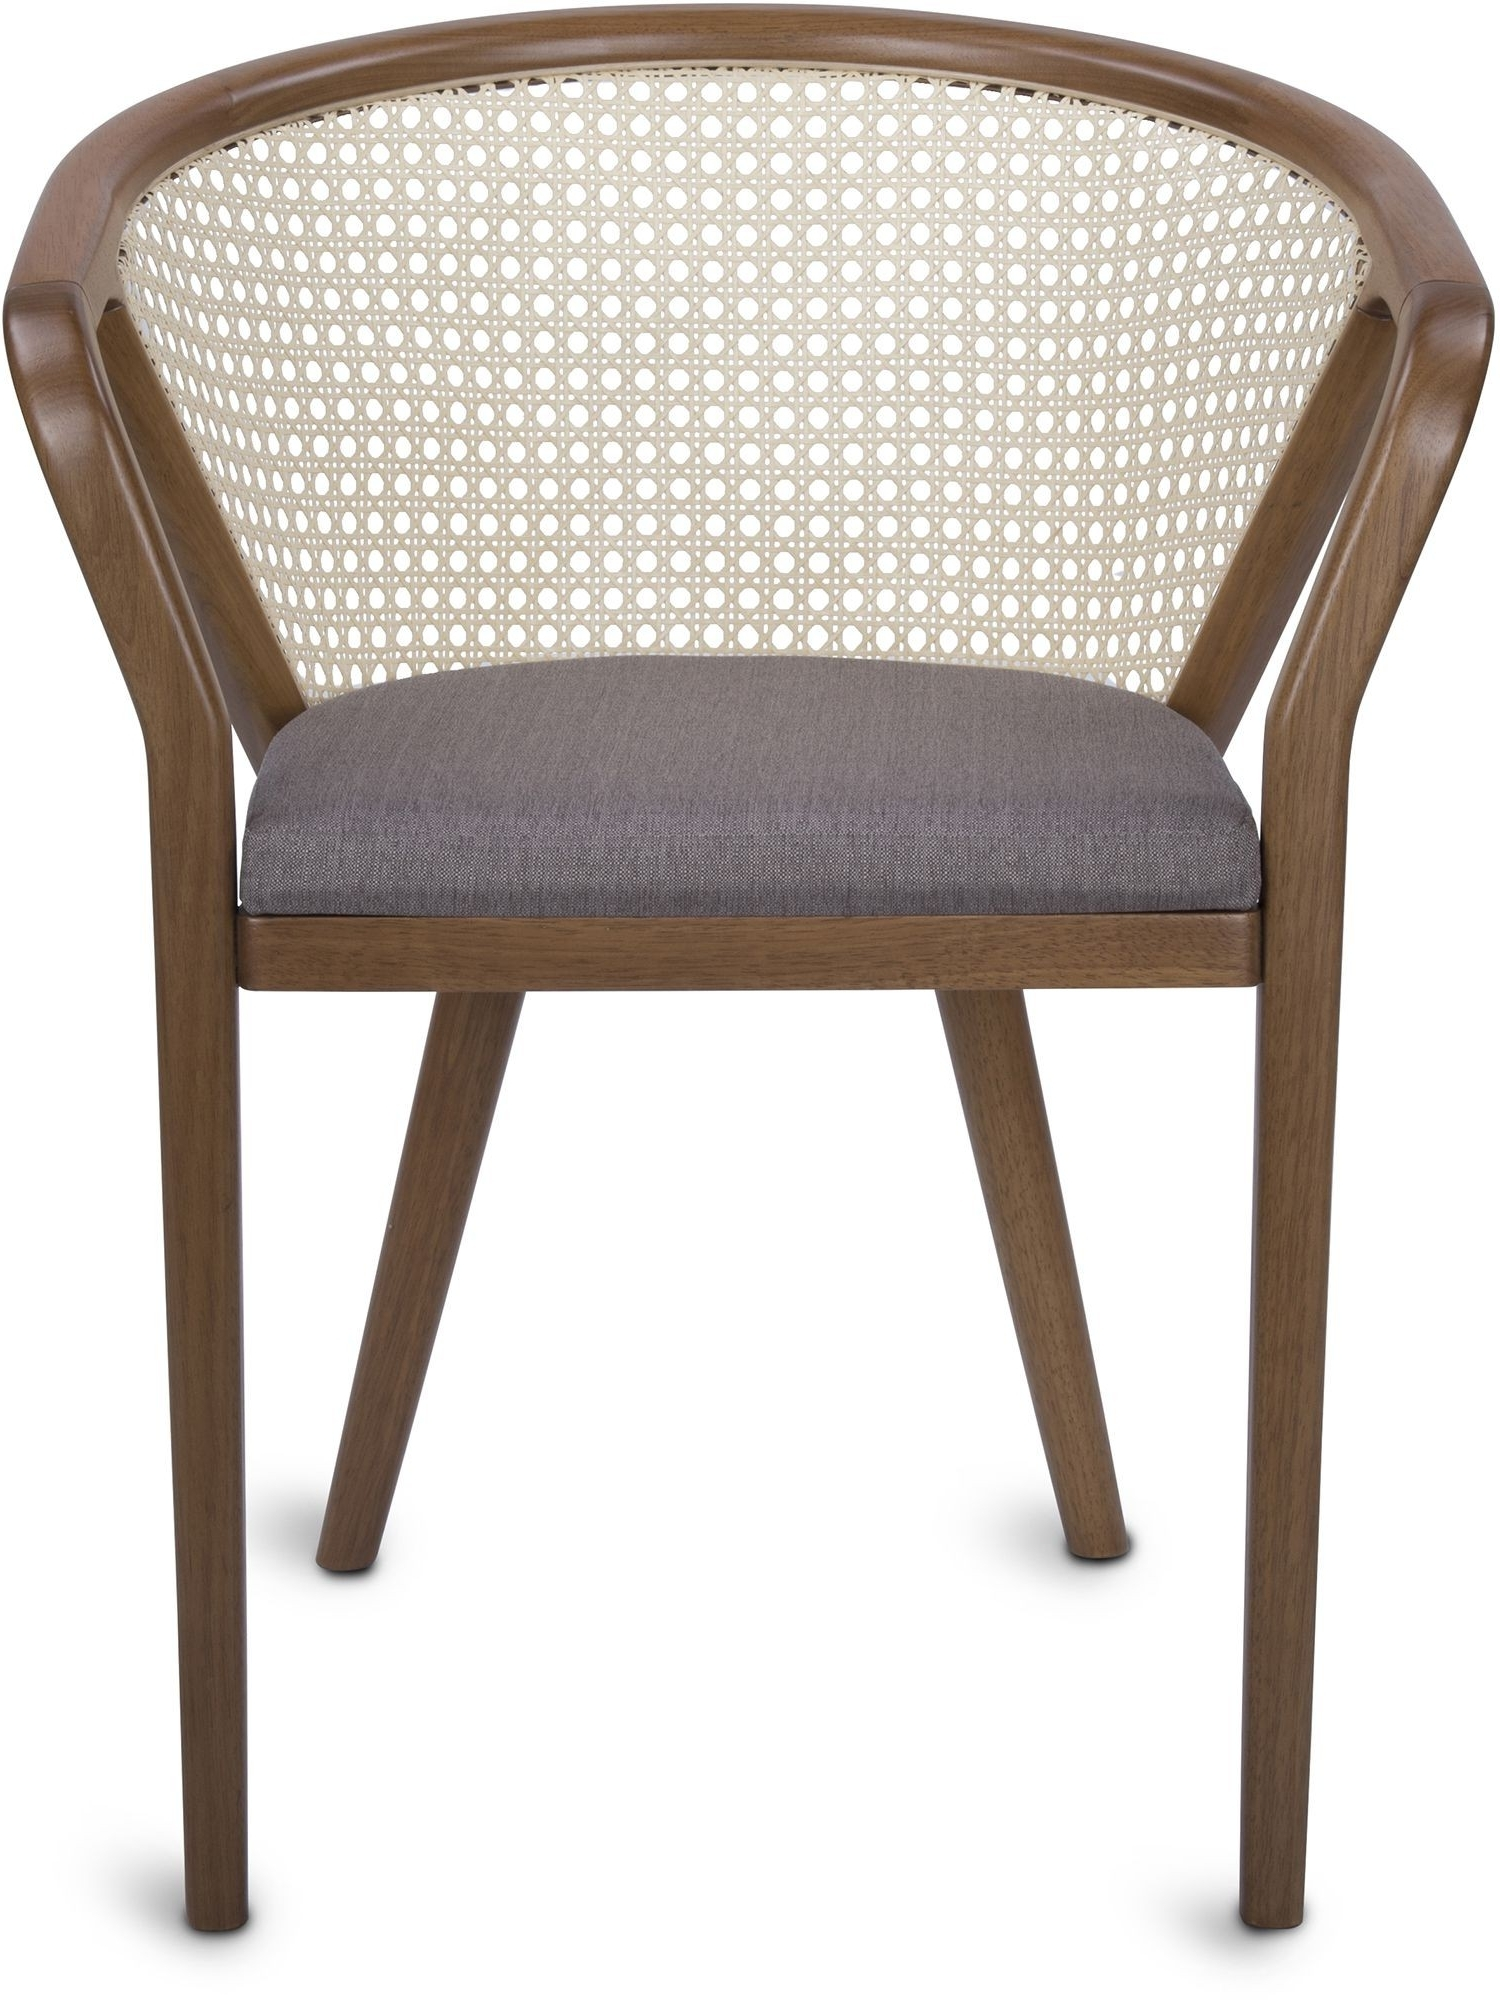 Popular Tela Dining Chair Natural Cane In Helms Side Chairs (View 14 of 20)